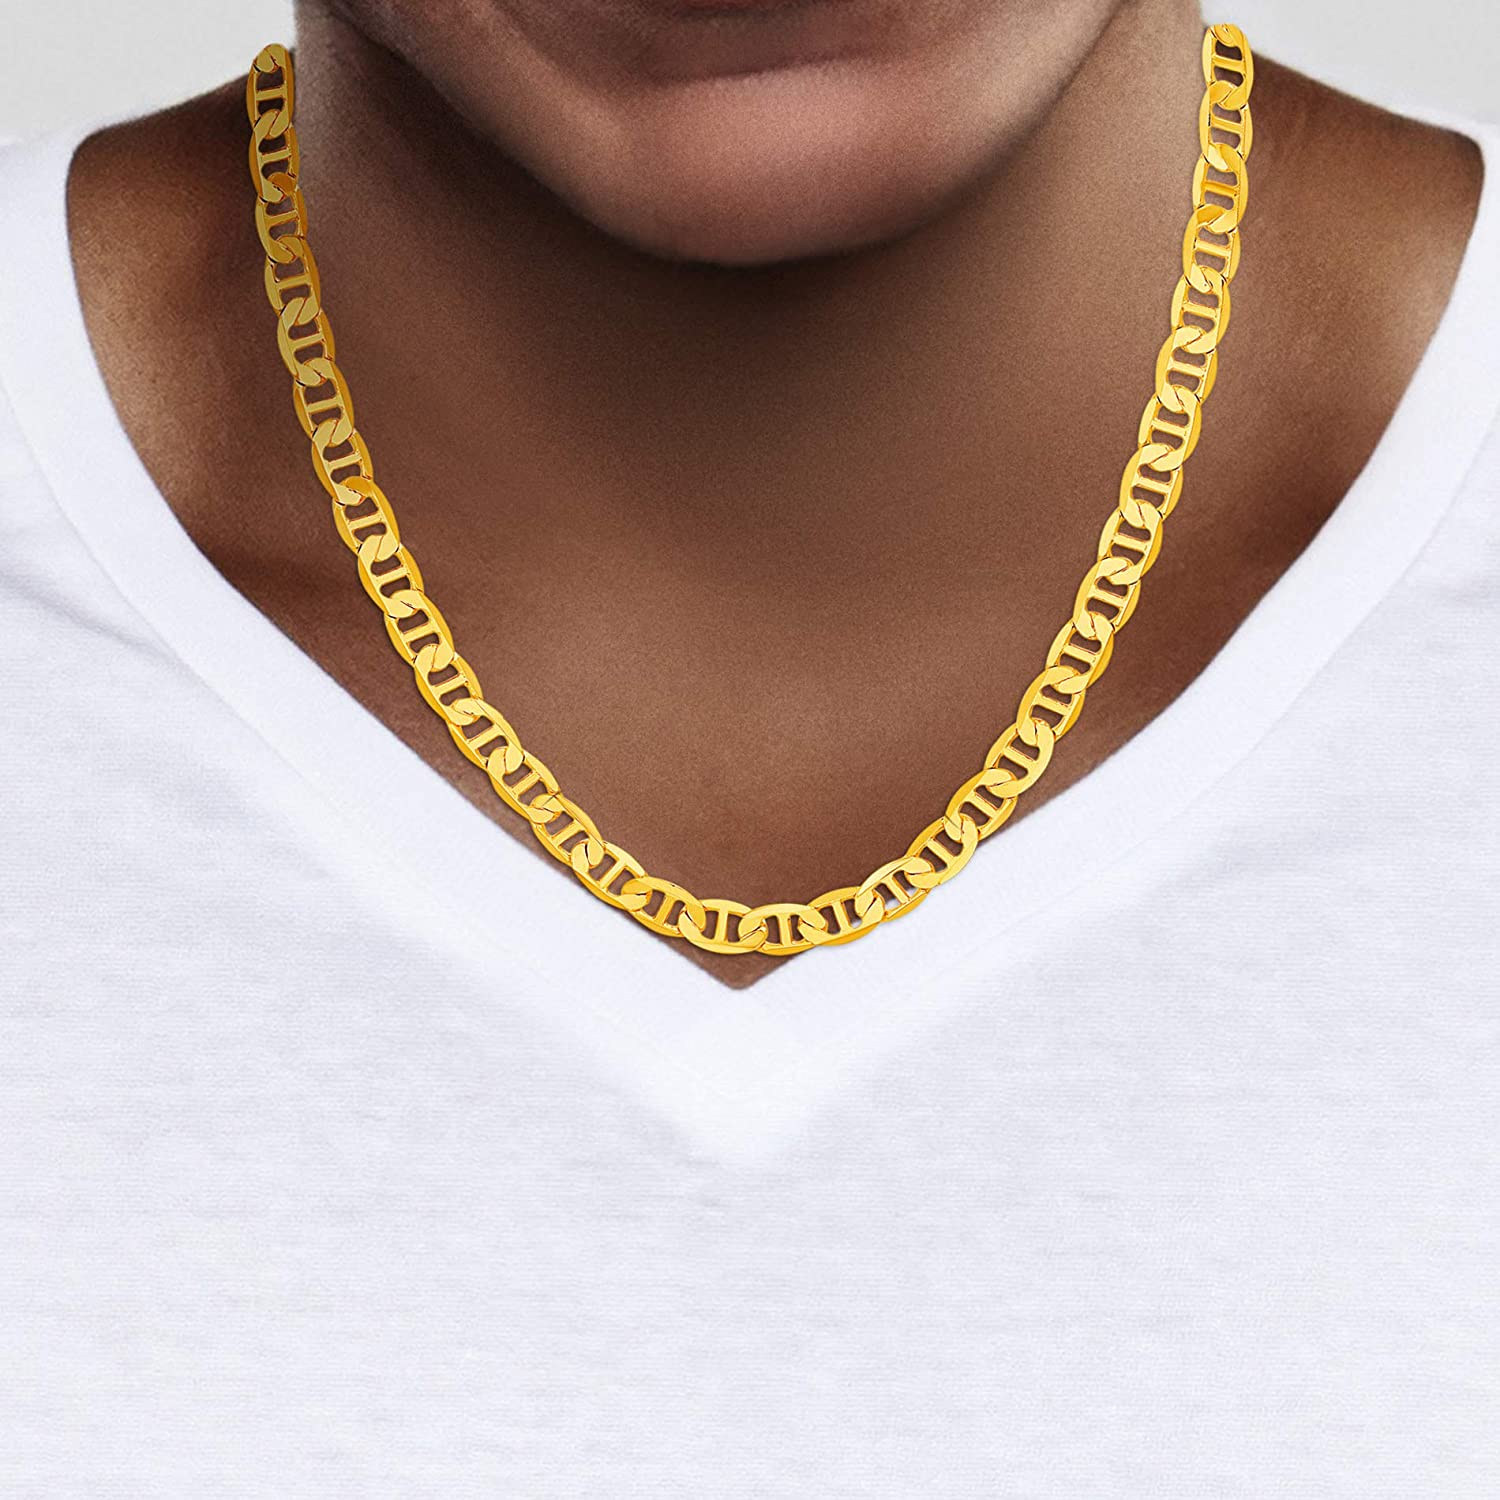 TRUCTURE BY NES 24K Yellow Gold Plated Brass 6mm Mens Mariner Chain Necklace